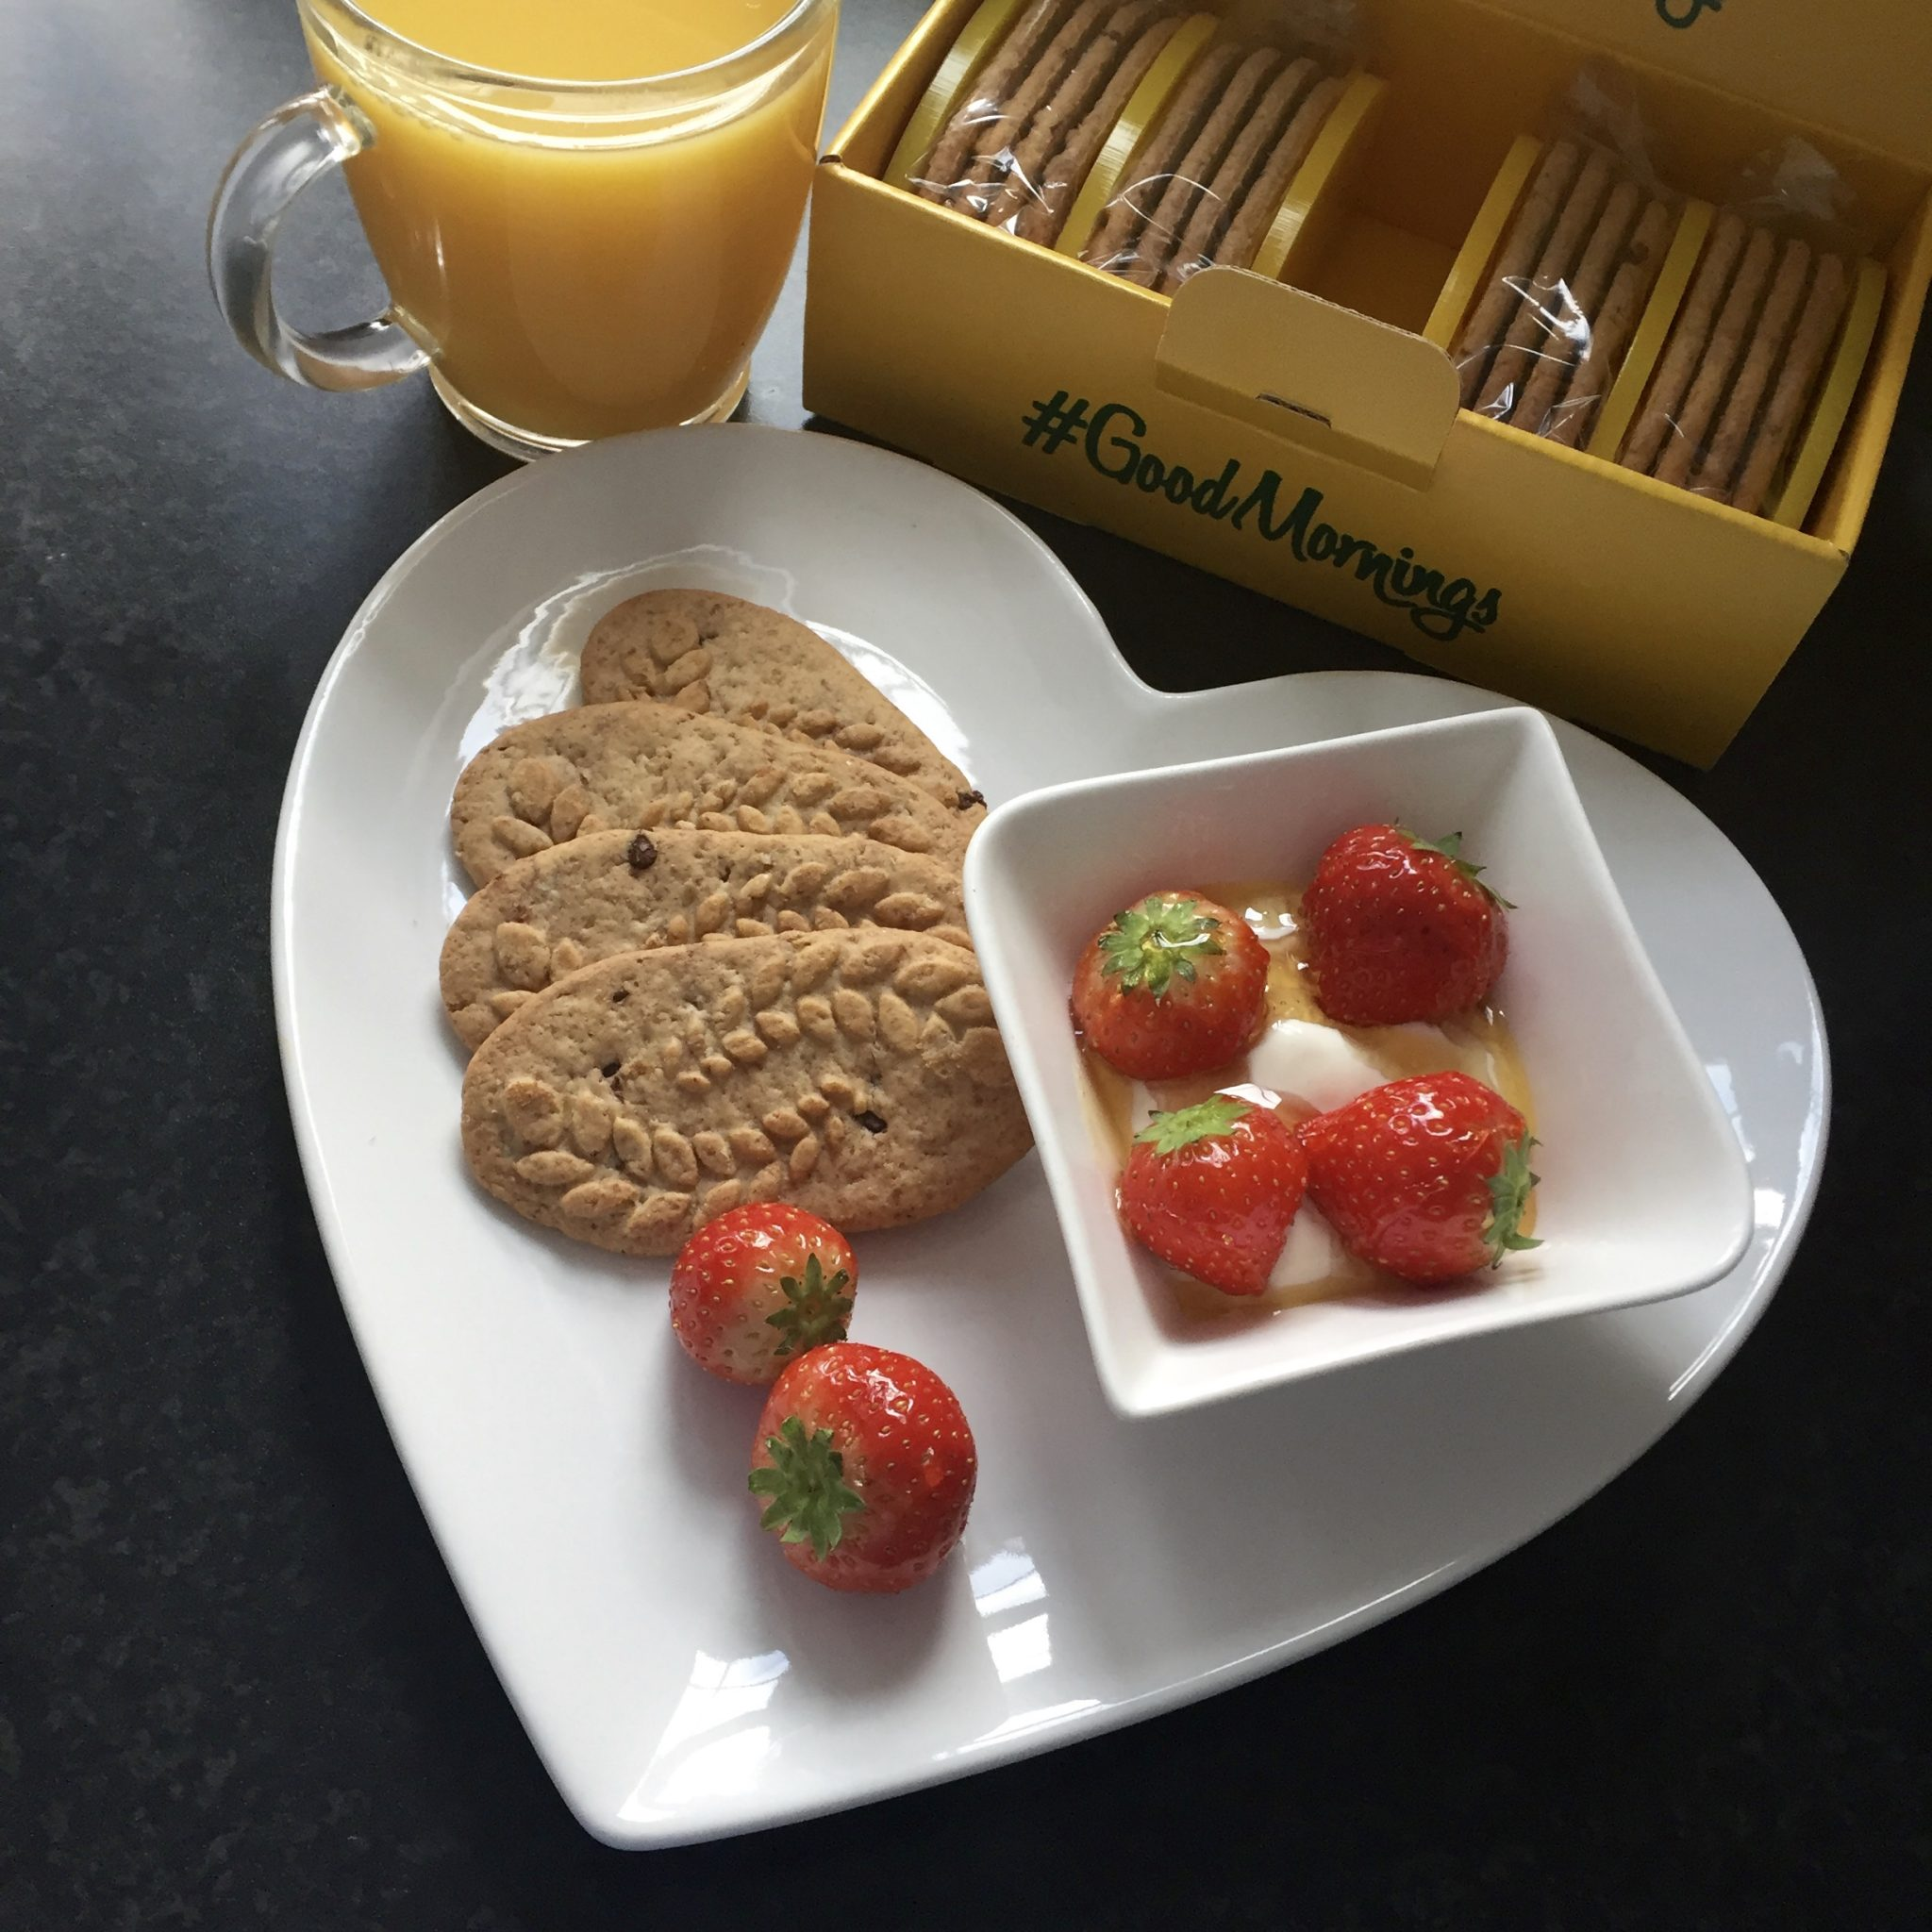 belVita breakfast biscuits review - Pretty Big Butterflies